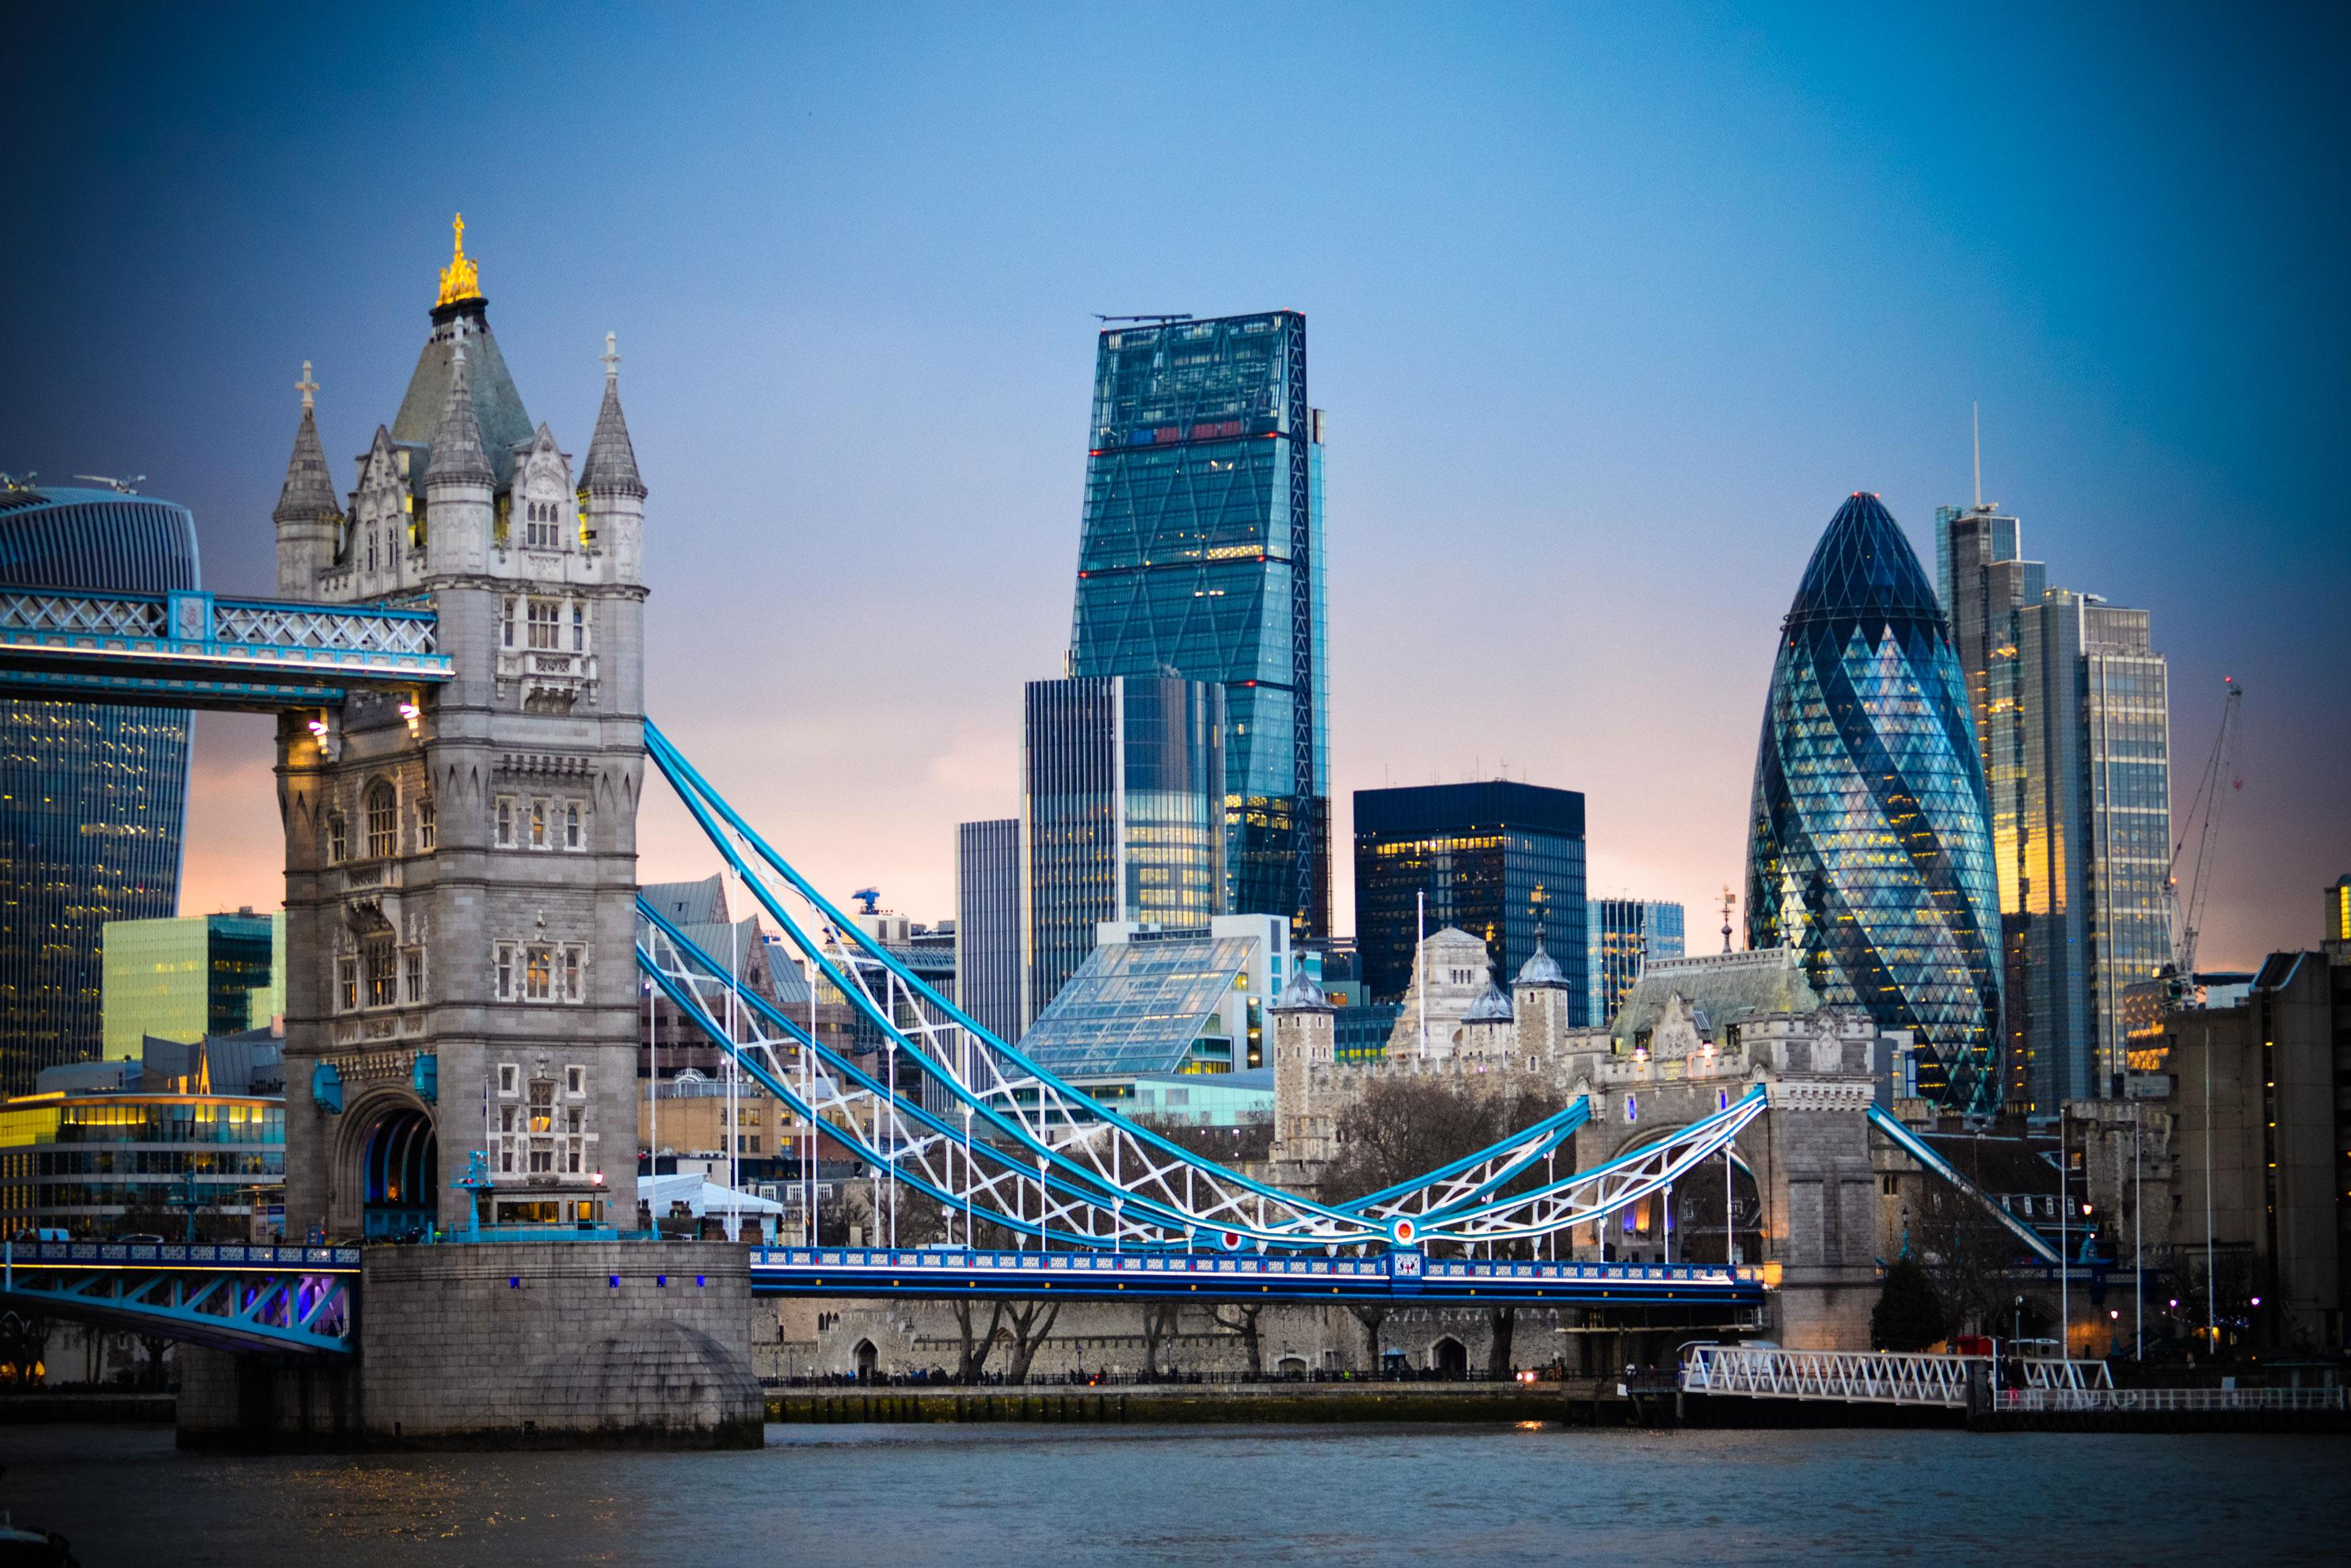 Experience the London Bridge with United Kingdom vacation packages